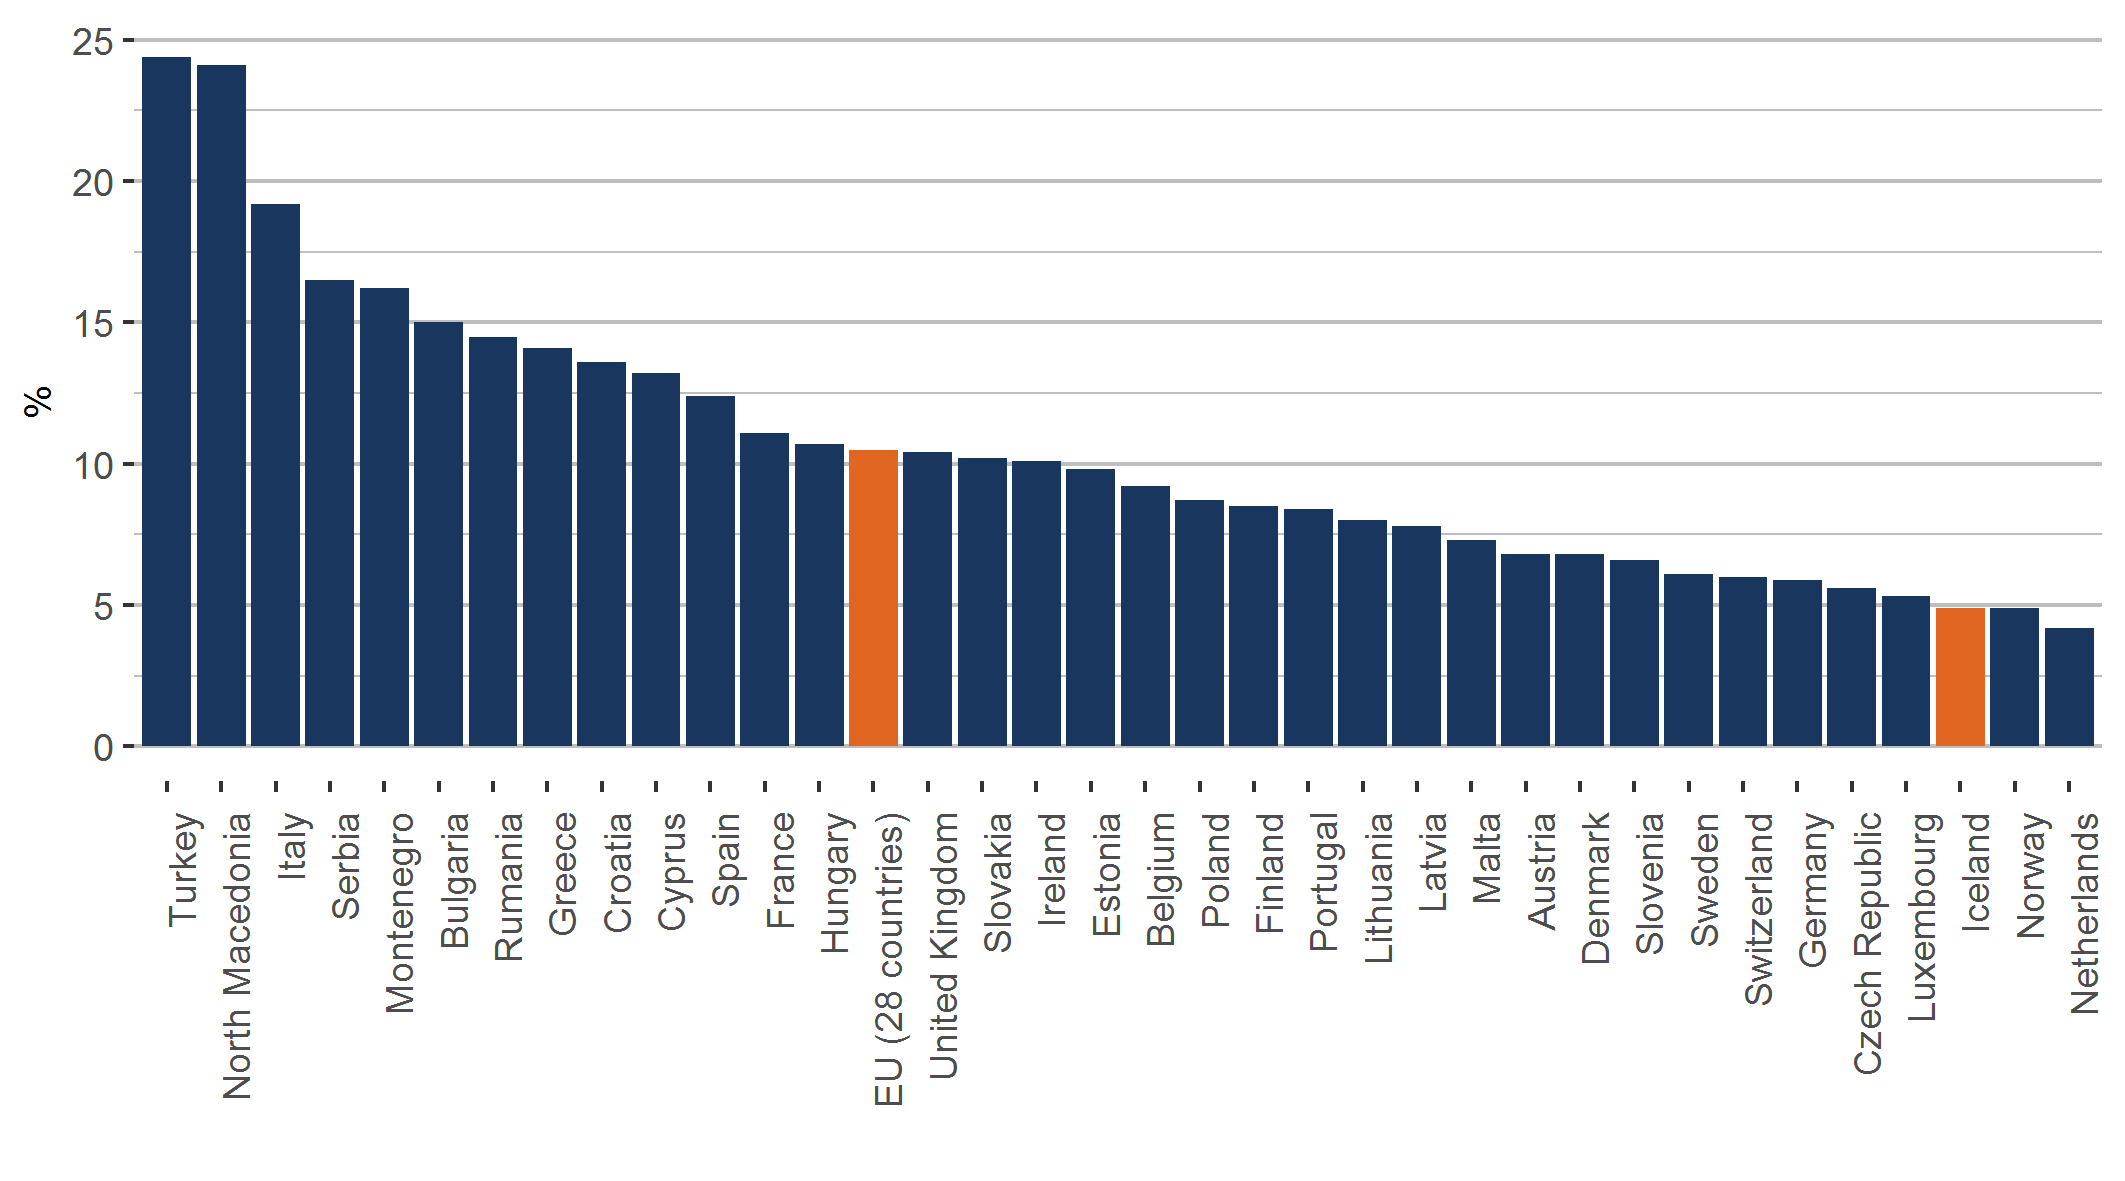 Figure 2. The percentage of youths aged 15-24 not in employment, education or training in 2018 in Europe